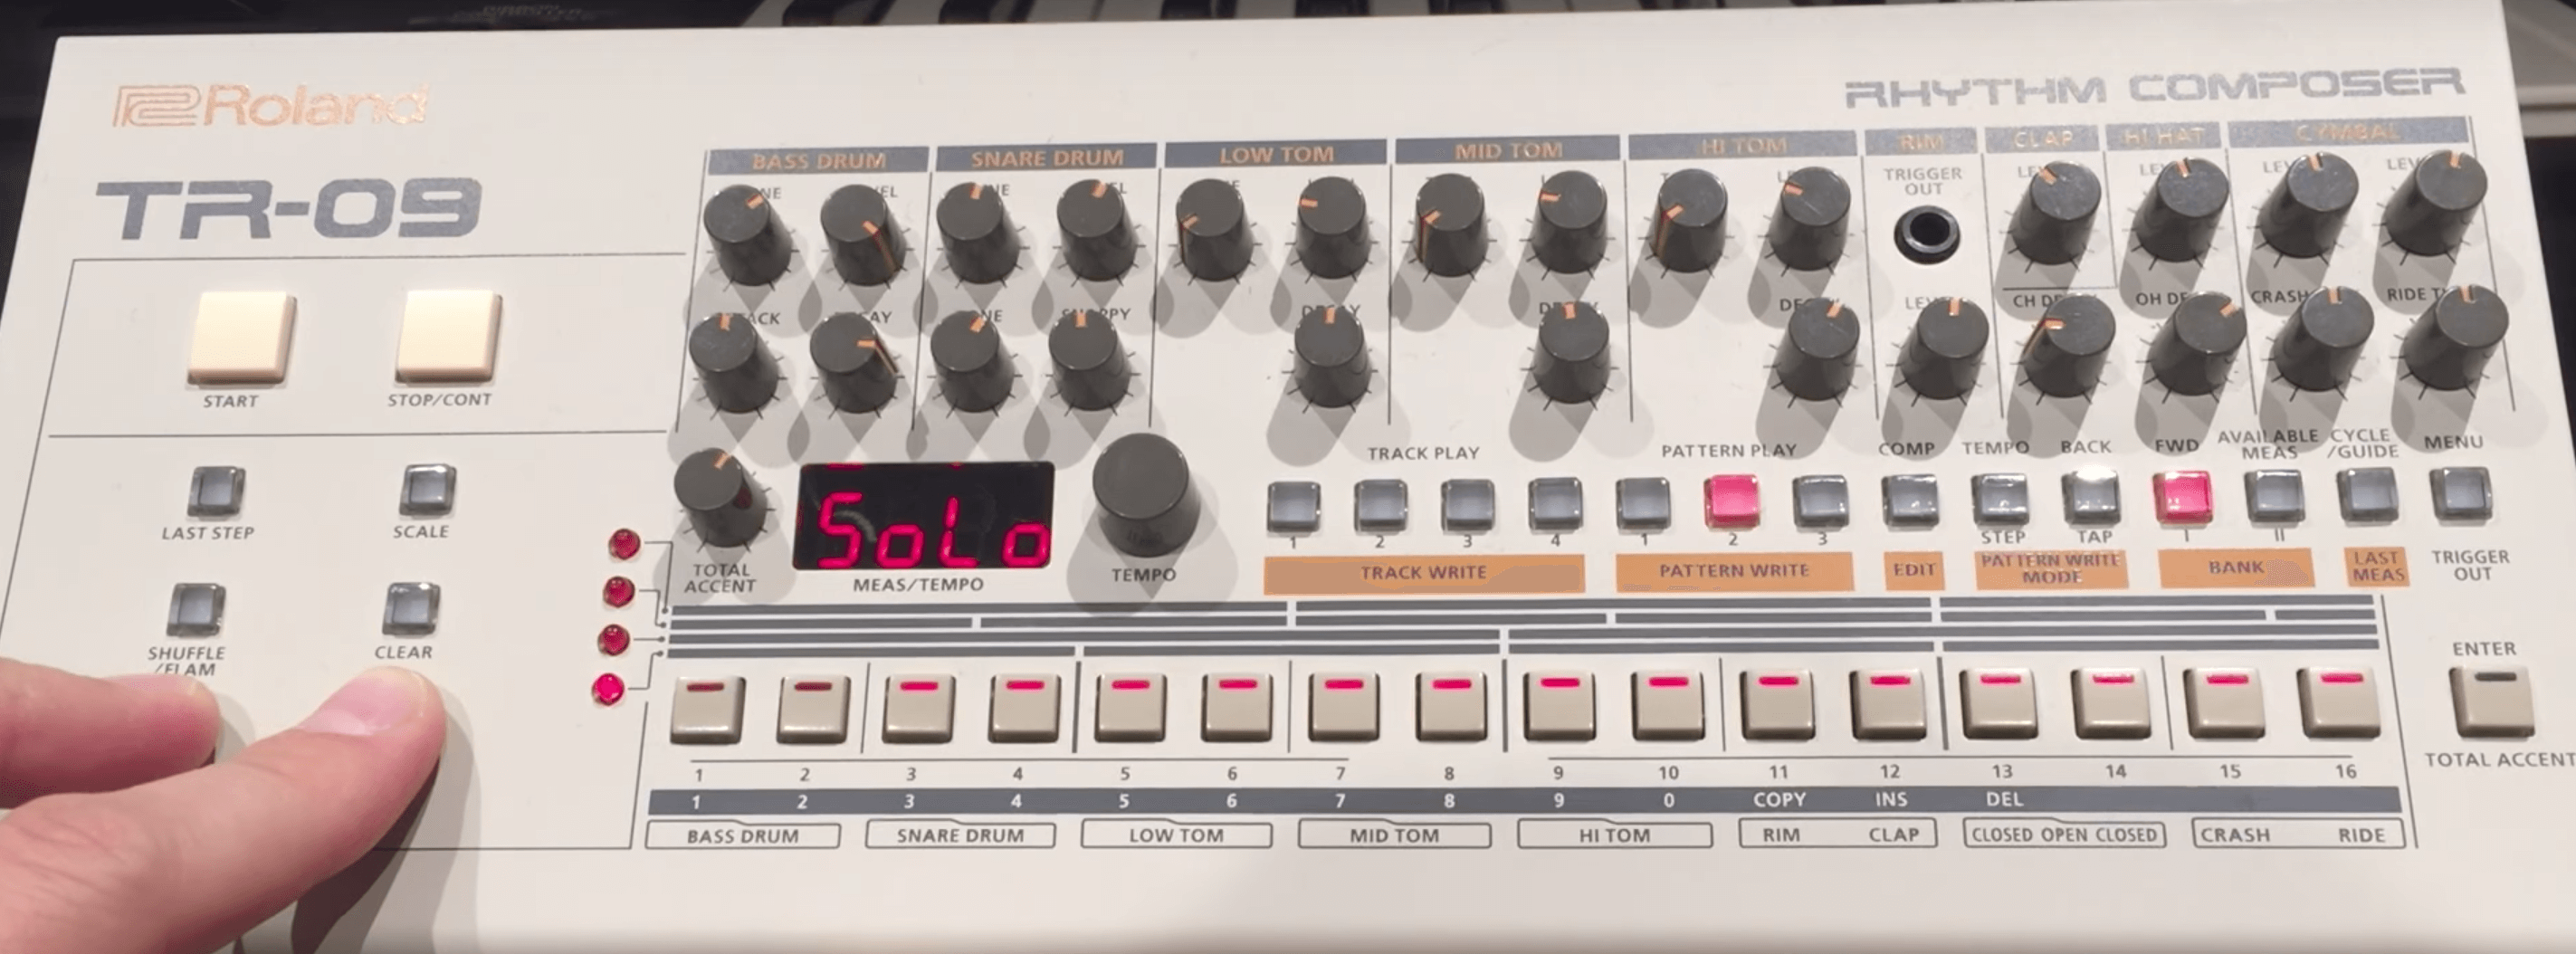 Get the most out of the Roland TR-09 with these hidden features